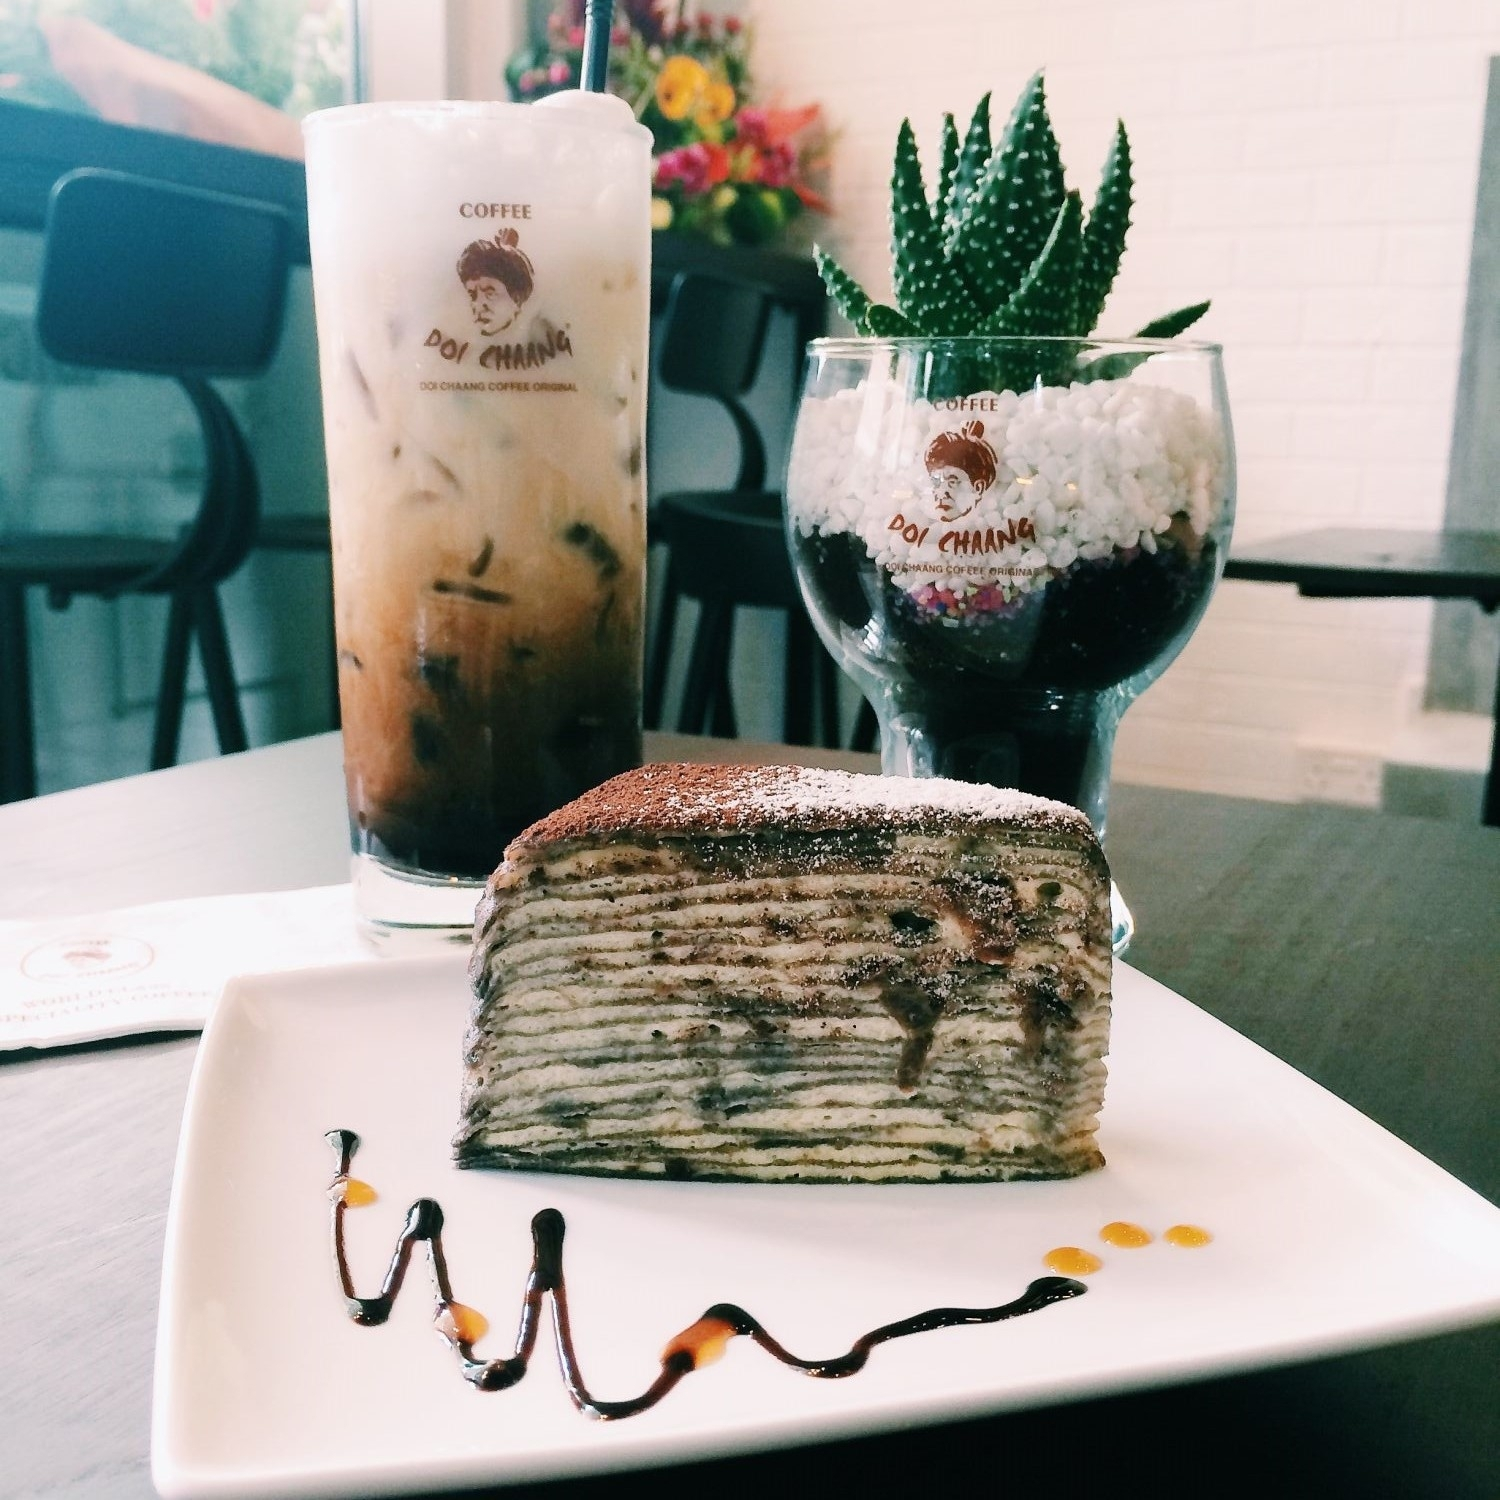 Iced Doi Chaang Coffee with Rum and Raisin Mille Crepe Cake - Doi Chaang